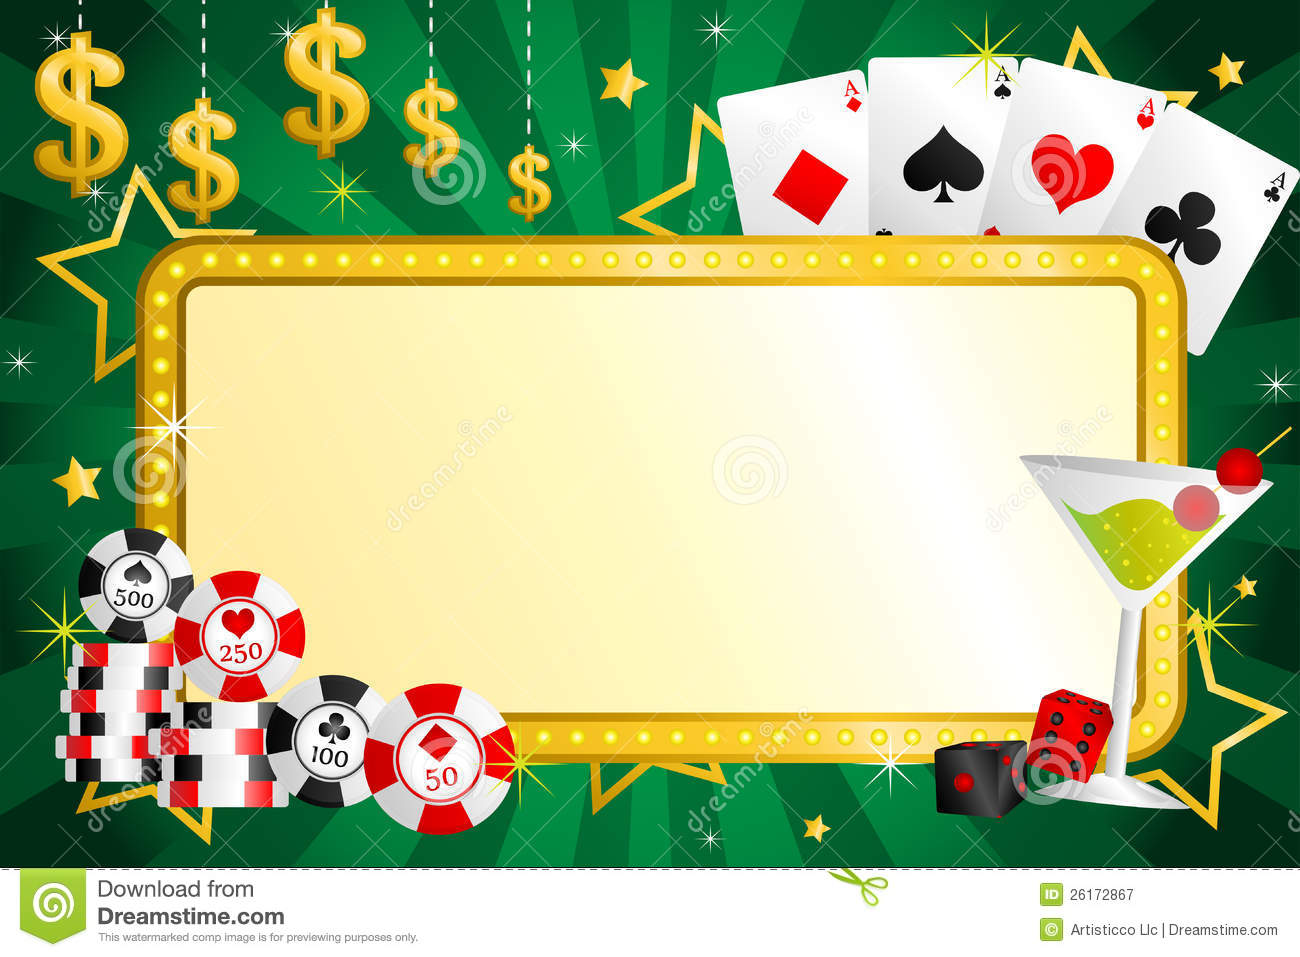 gambling-background-26172867.jpg